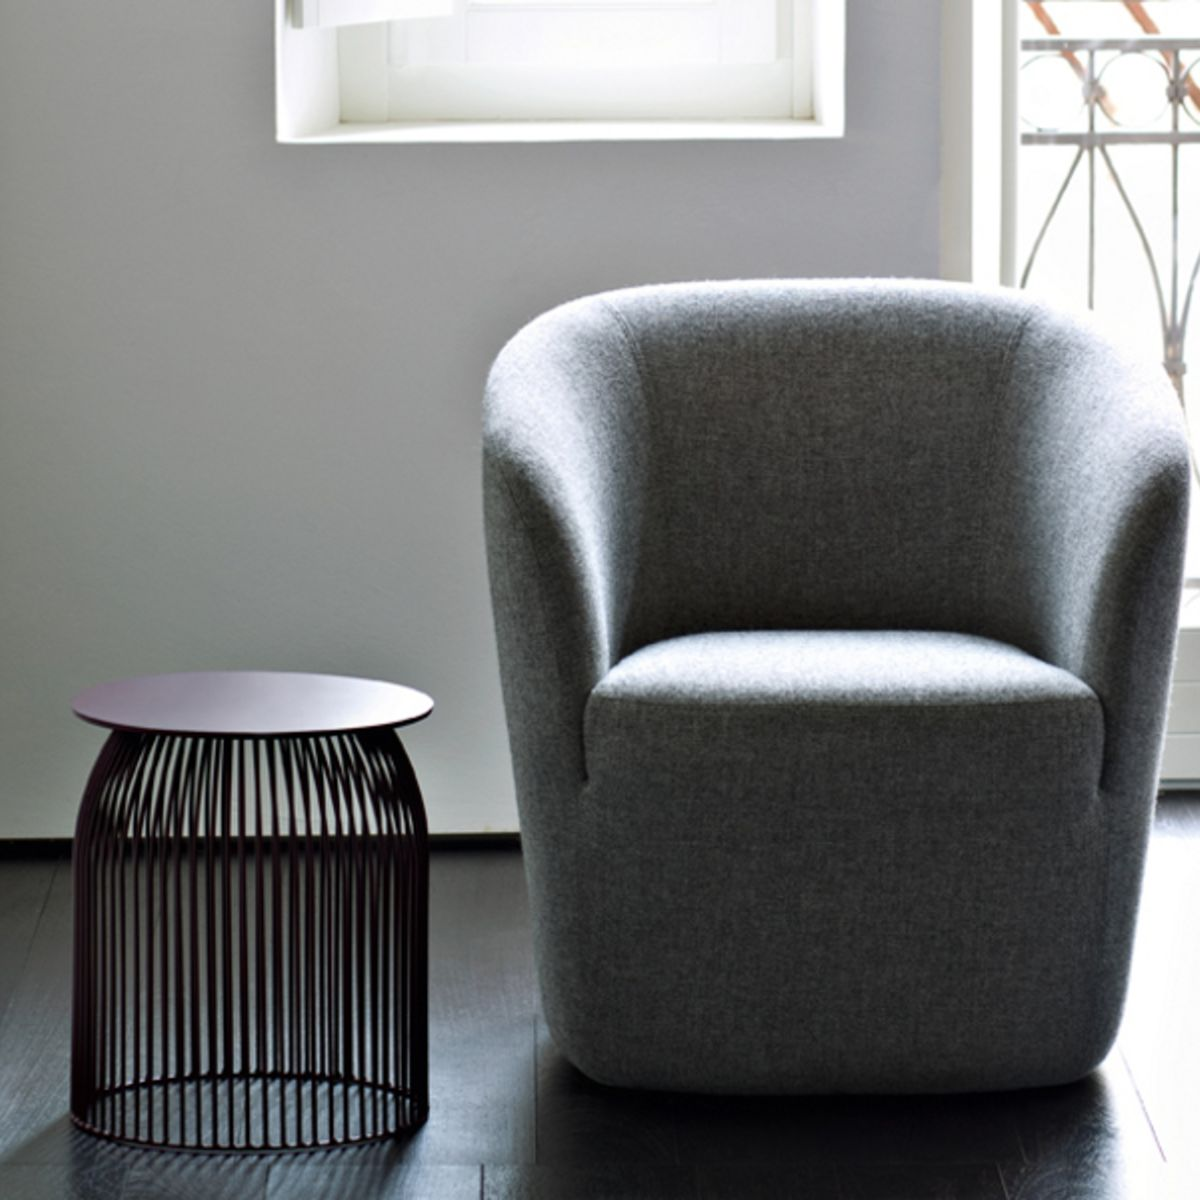 A photo of the dep armchair with side table